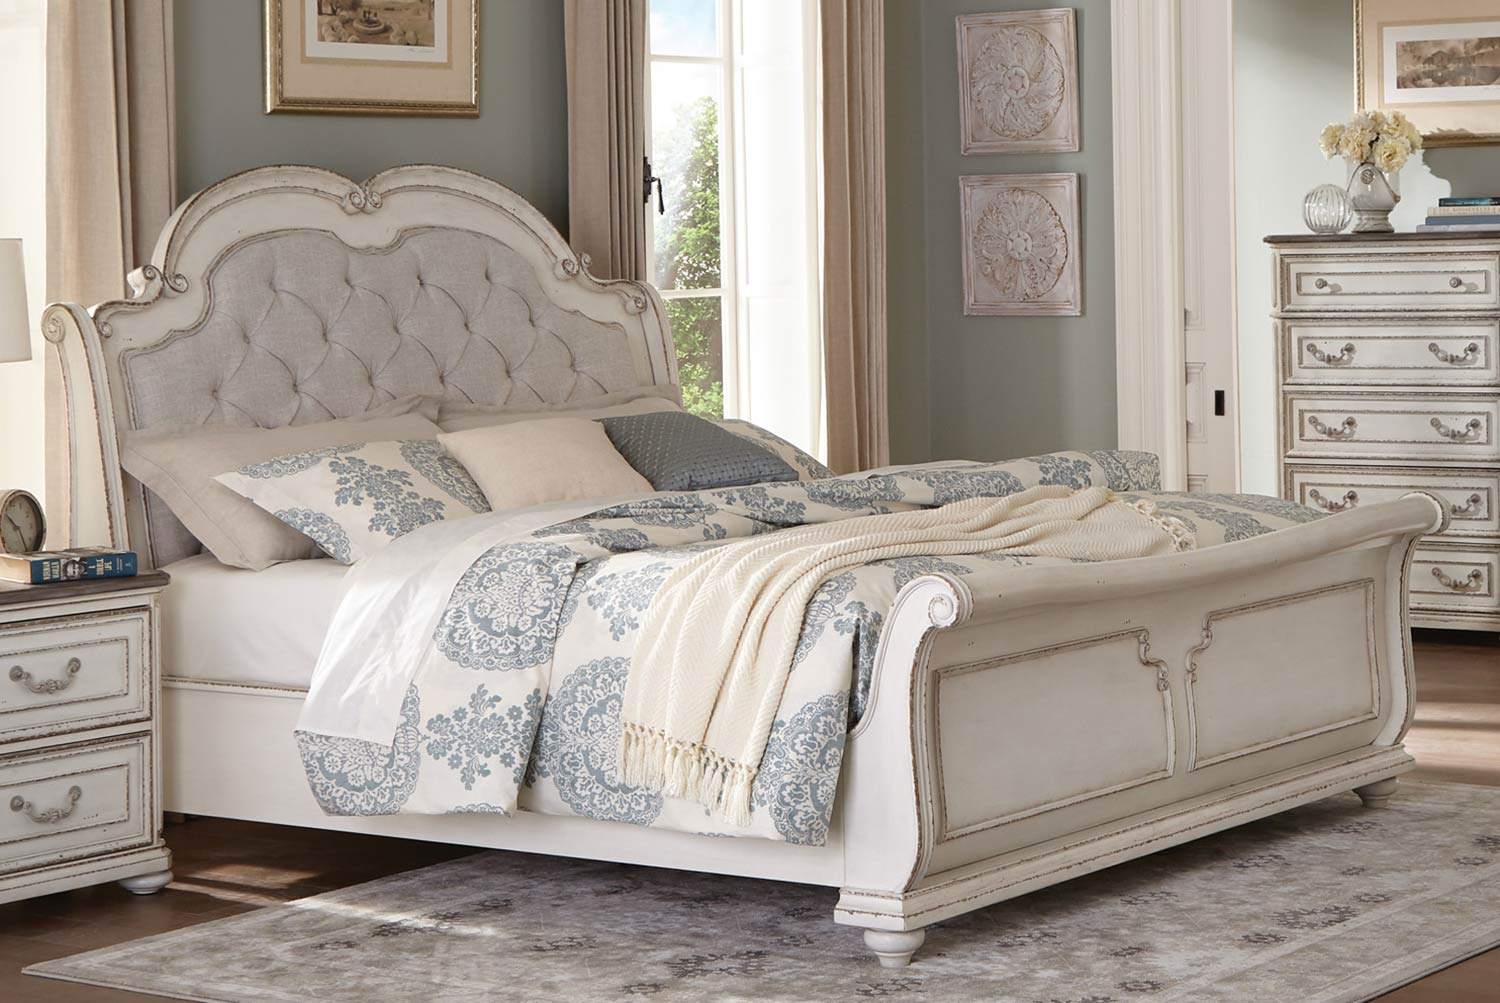 Homelegance Willowick Sleigh Bed - Antique White Finish